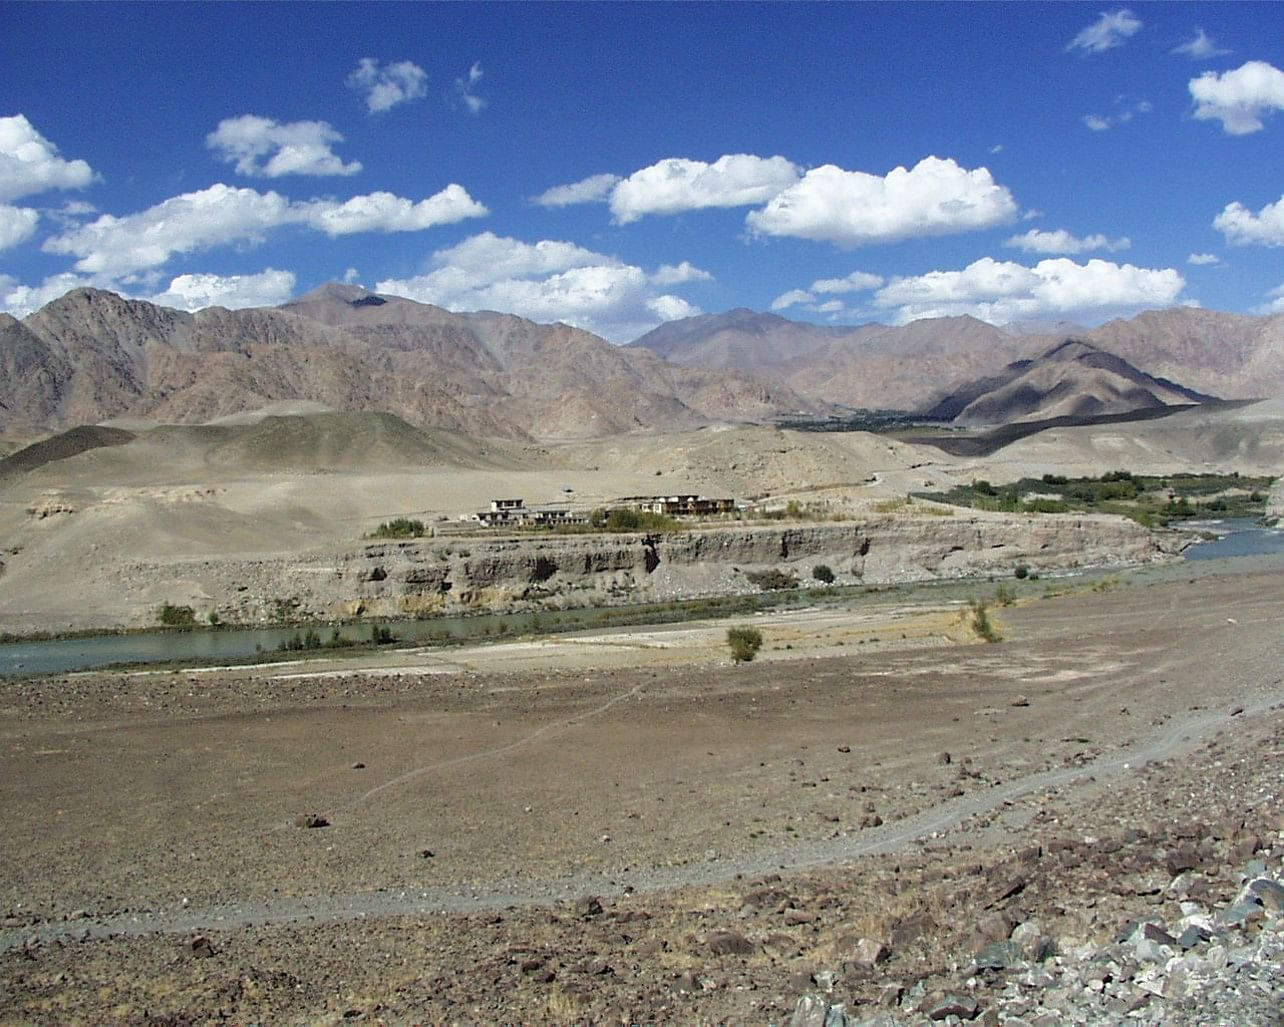 Typical landscape of Ladakh near SECMOL school.